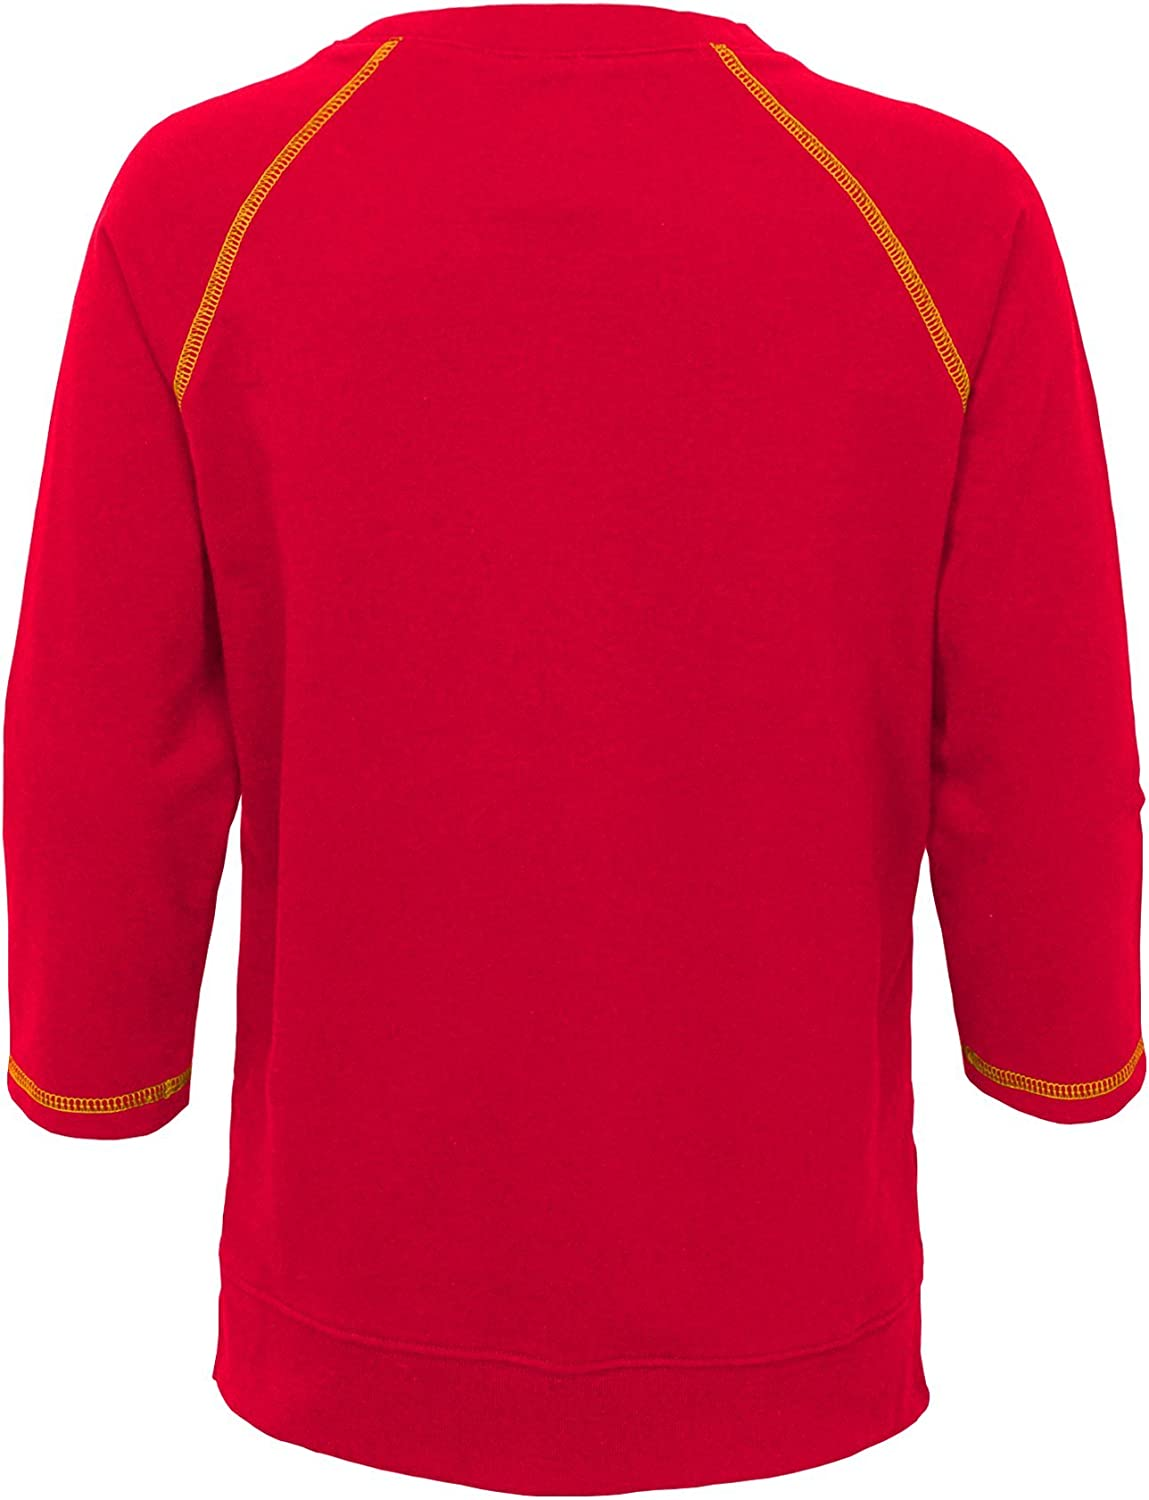 Outerstuff NFL San Francisco 49ers Youth Boys Team Captain Long Sleeve Slub Tee Crimson Youth Small 7-8